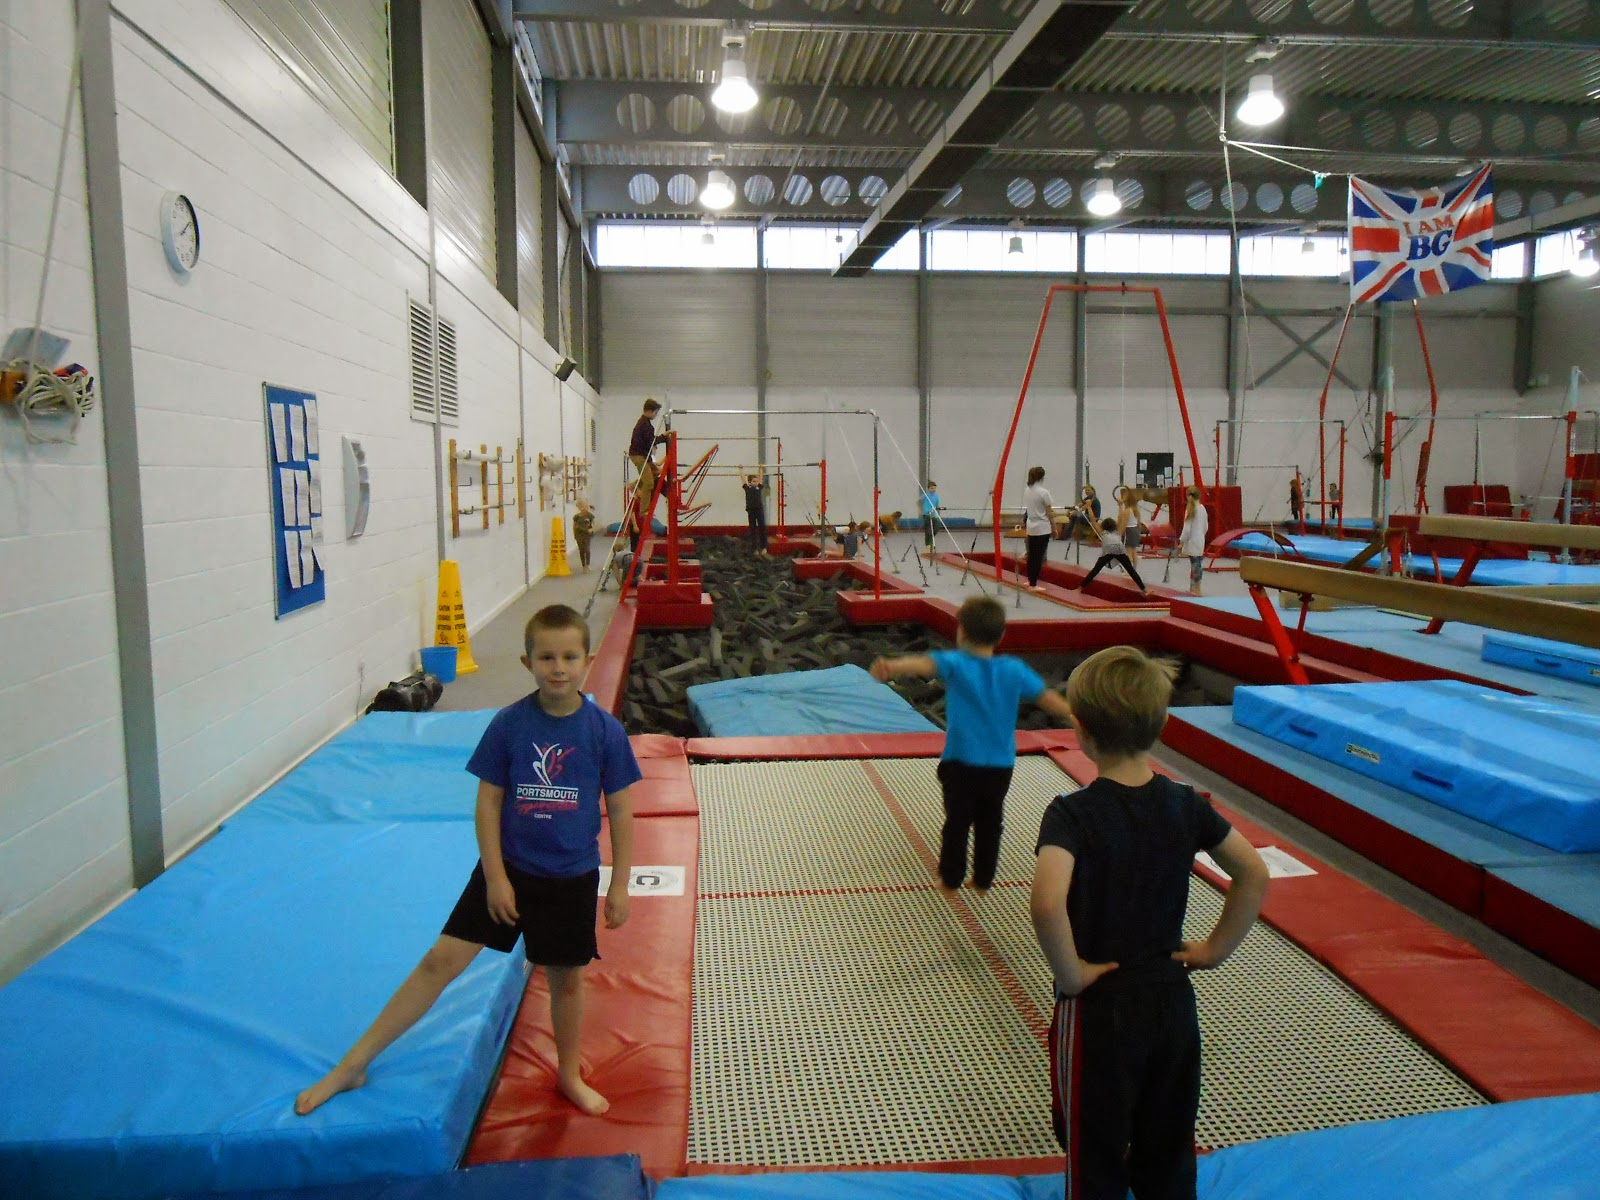 portsmouth gymnastics centre alex way